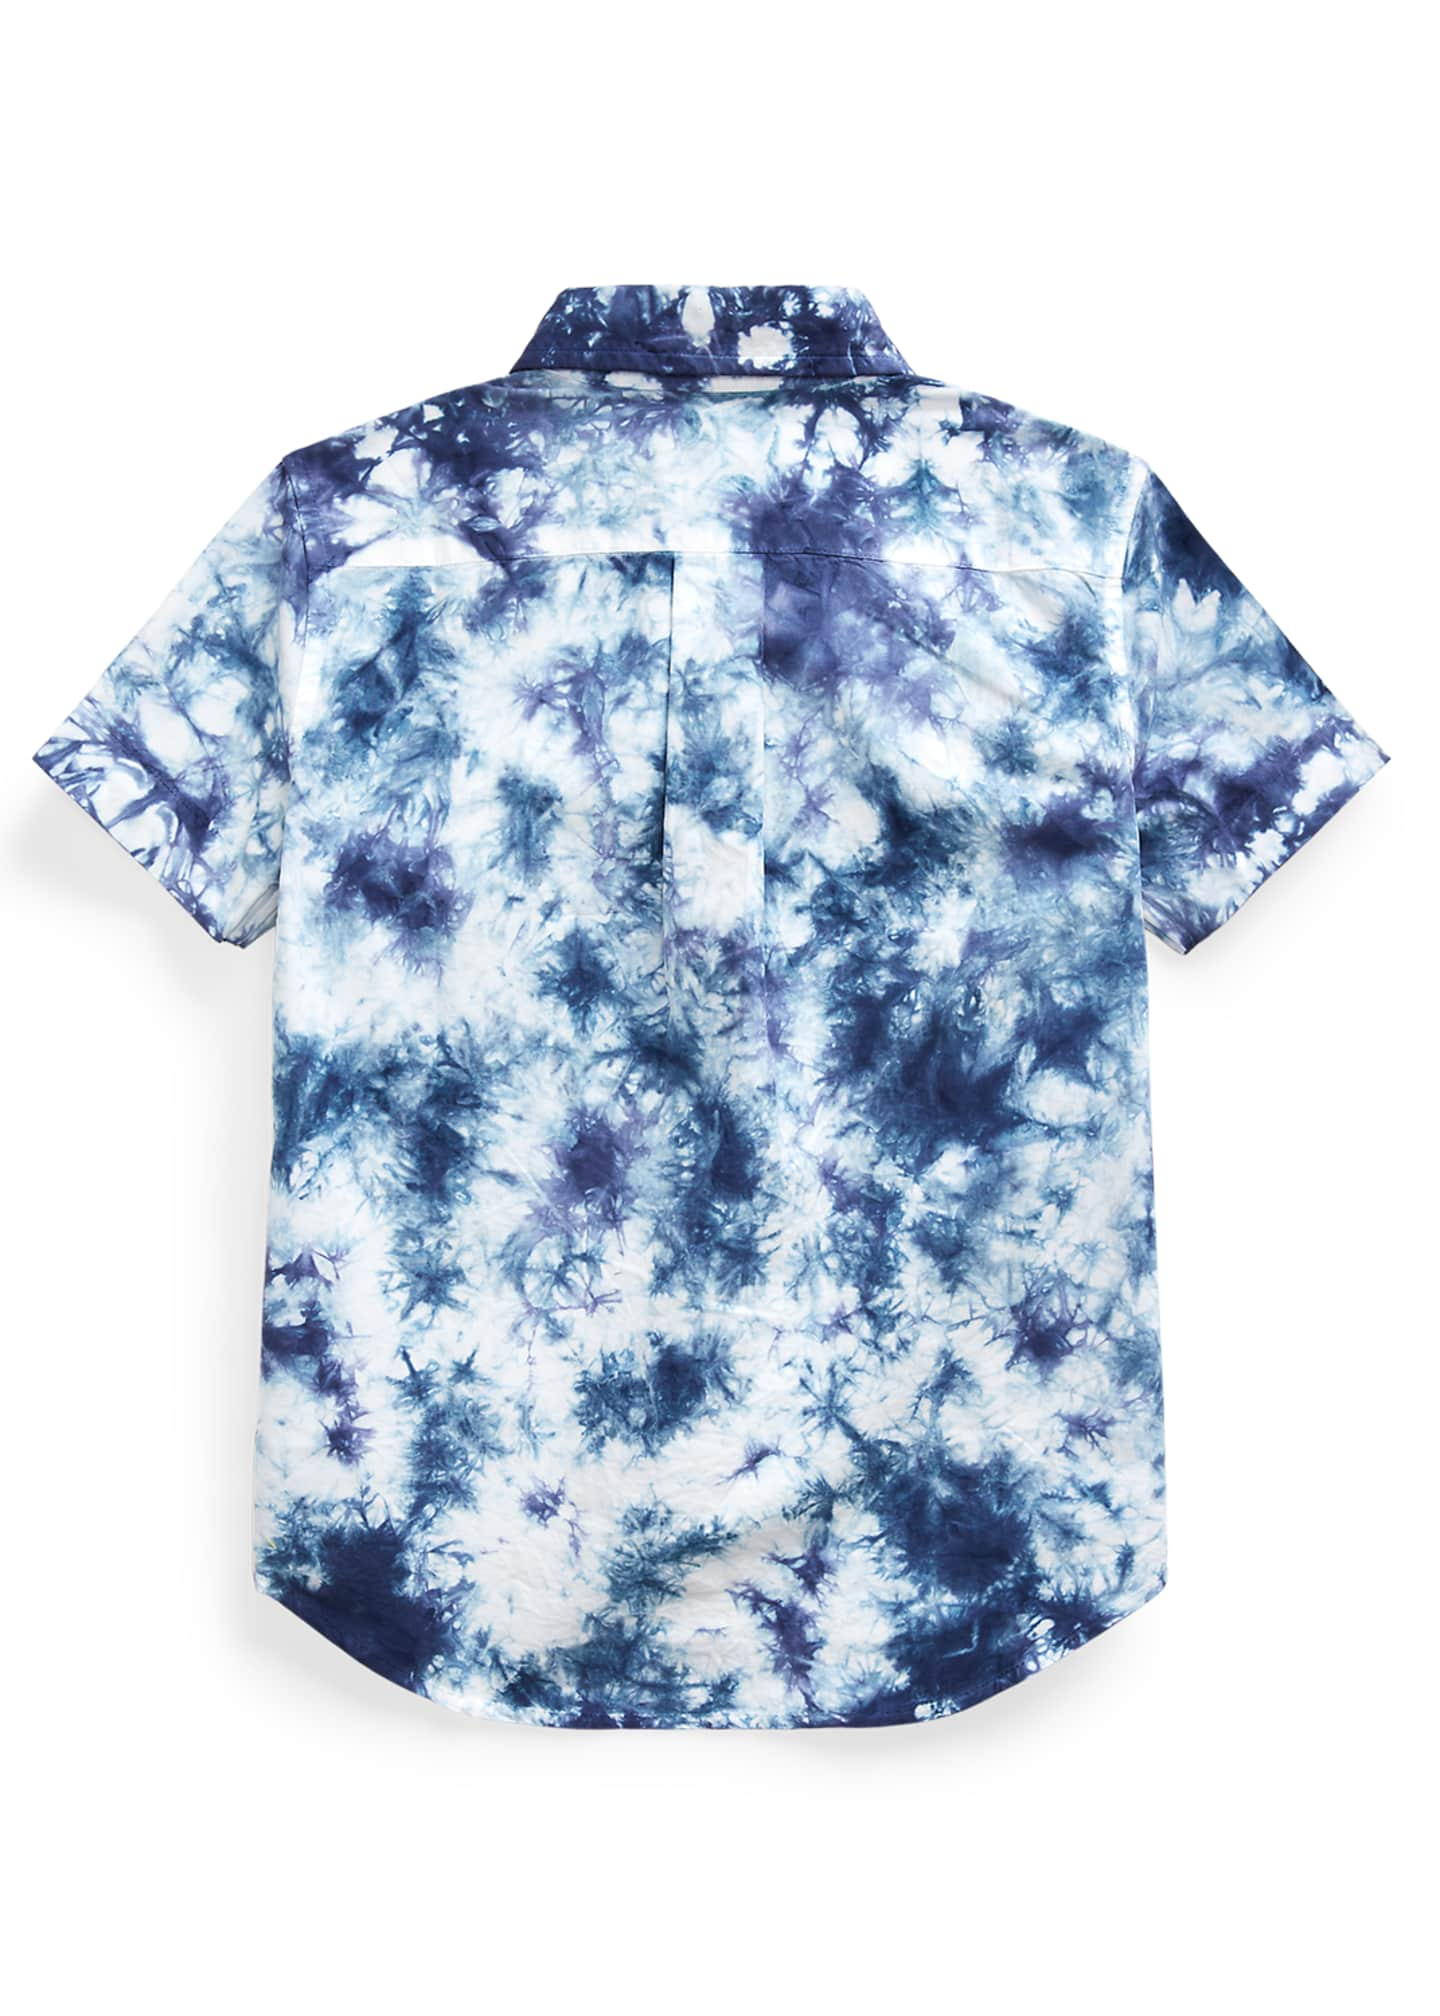 Image 2 of 2: Boy's Tie Dyed Poplin Button-Down Shirt, Size 2-4